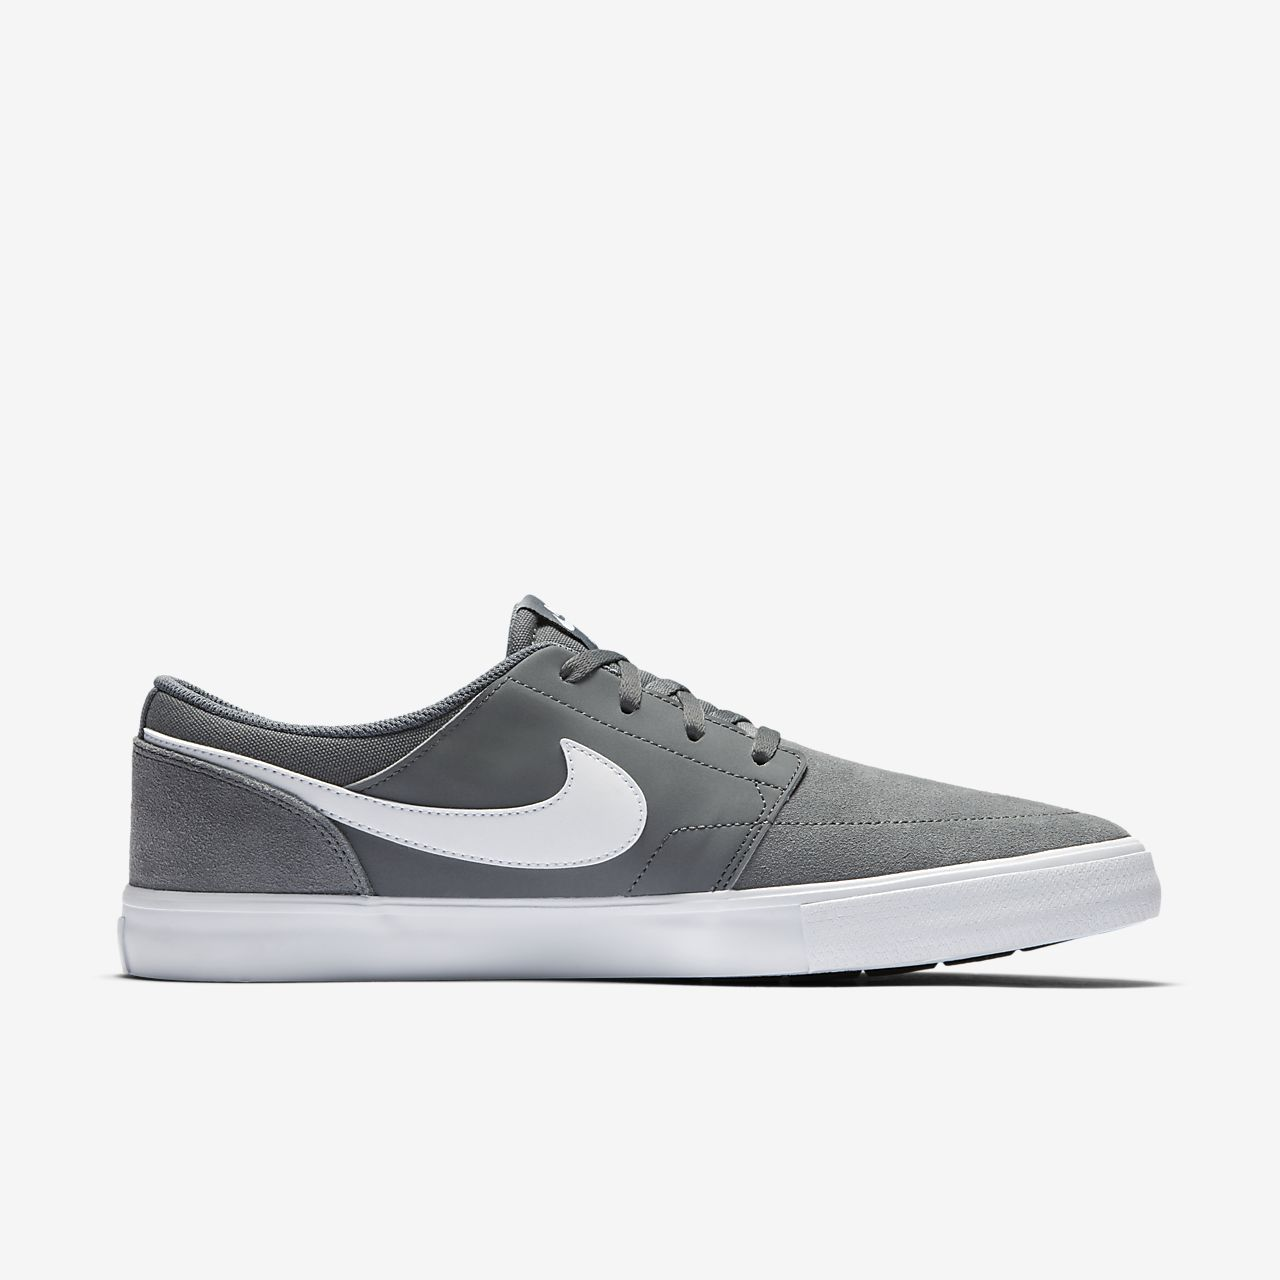 Chaussures Nike Sb Blanc Collection Taille 46 Hommes TY72826T